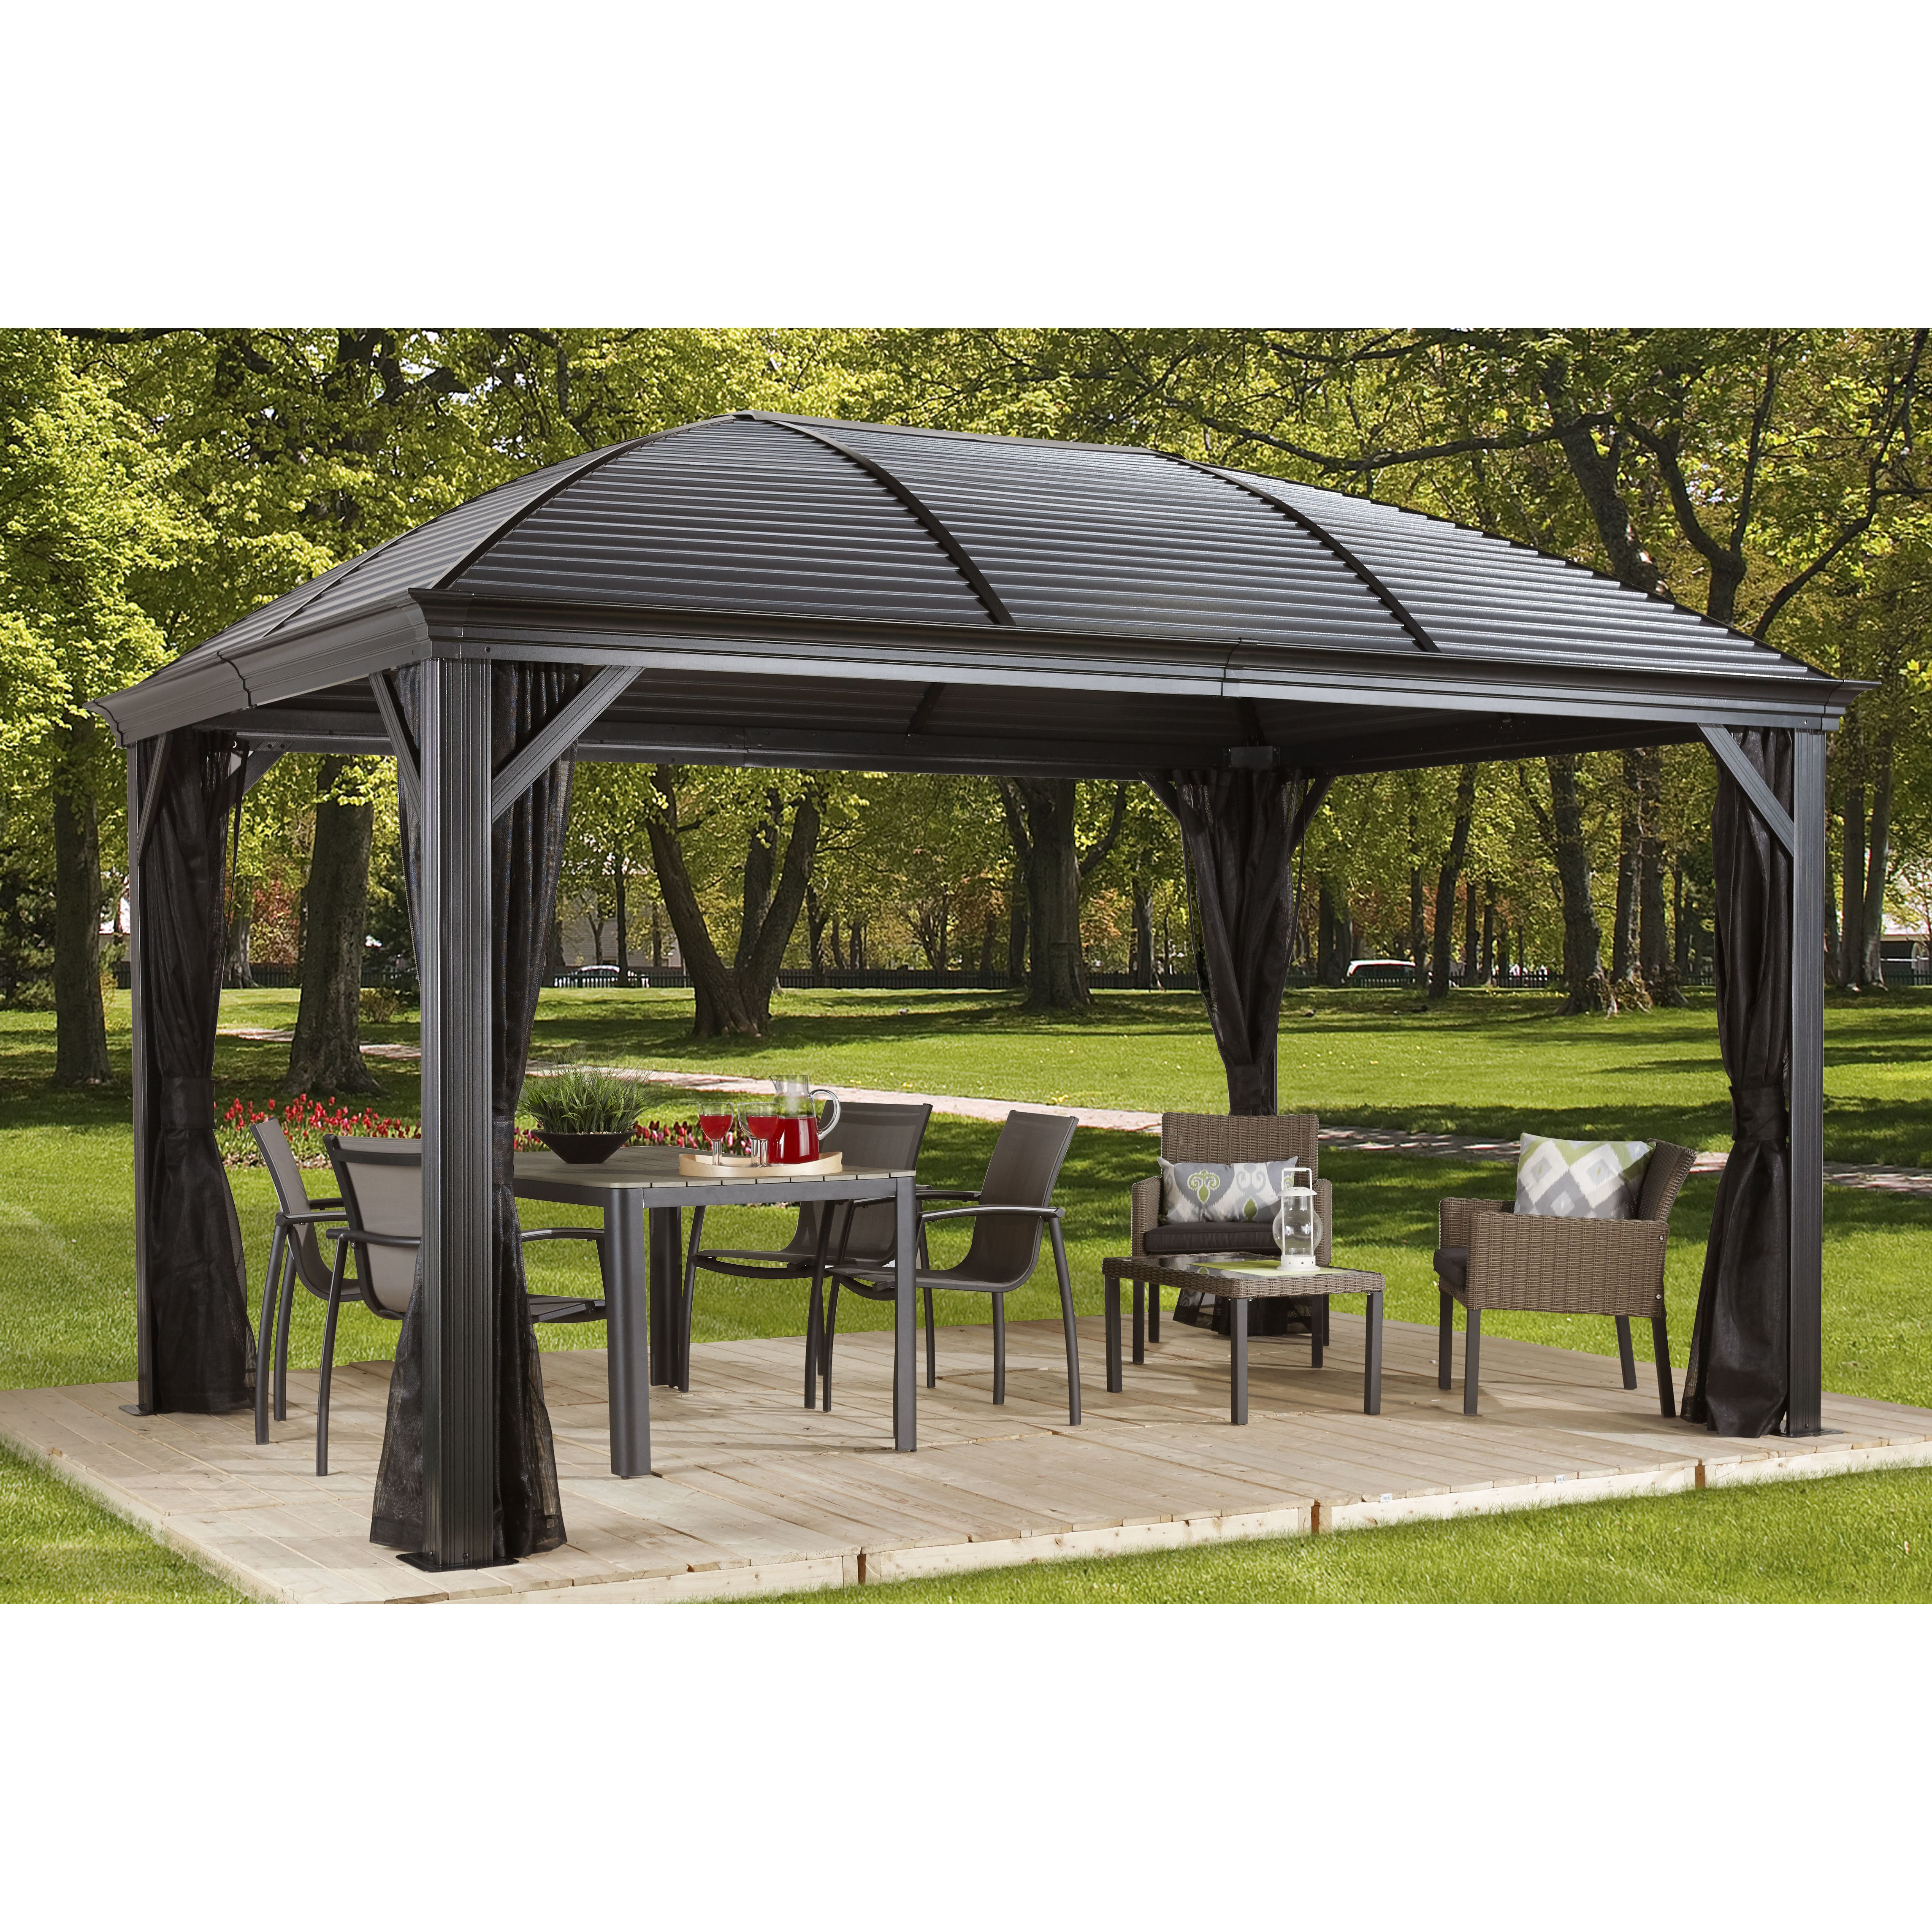 Aluminum Outdoor Shelters : Sojag moreno ft w d metal permanent gazebo